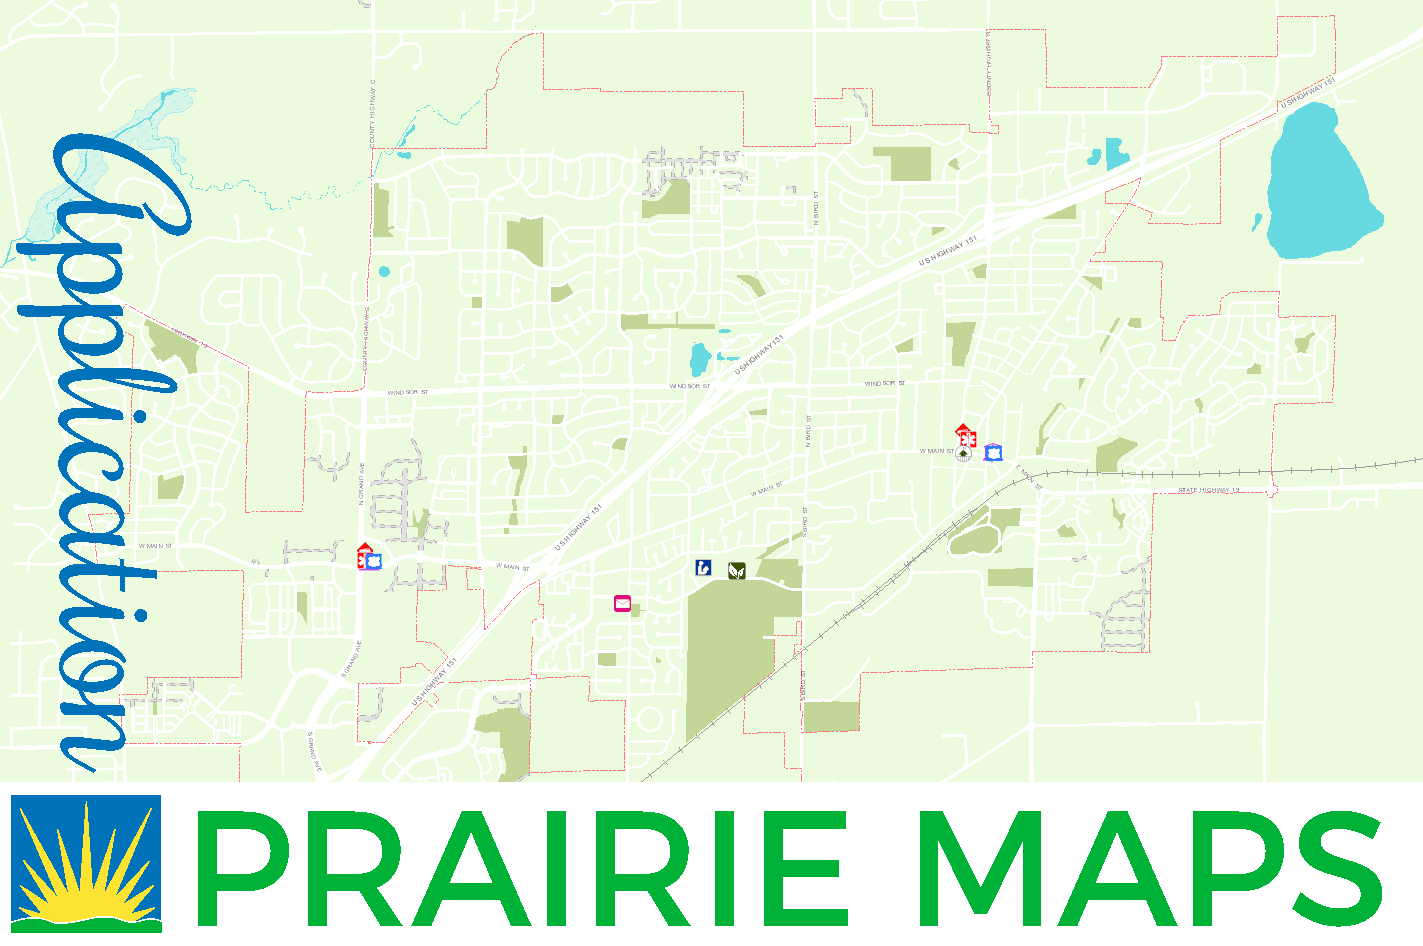 Maps & GIS | Sun Prairie, WI - Official Website Gis Map on arcgis maps, data model, computer aided design, enterprise resource planning, aerial photography, 5 types of thematic maps, web maps, satellite maps, map projection, engineering maps, linn county iowa flood maps, earth remote sensing, geographic coordinate system, information systems, science maps, geoportal maps, louisa county va plat maps, global positioning system, geographic literacy maps, spatial analysis, xml maps, goo maps, geography maps, crime mapping, library maps, geospatial maps, cartography maps, contour line, shapefile maps, wria maps,